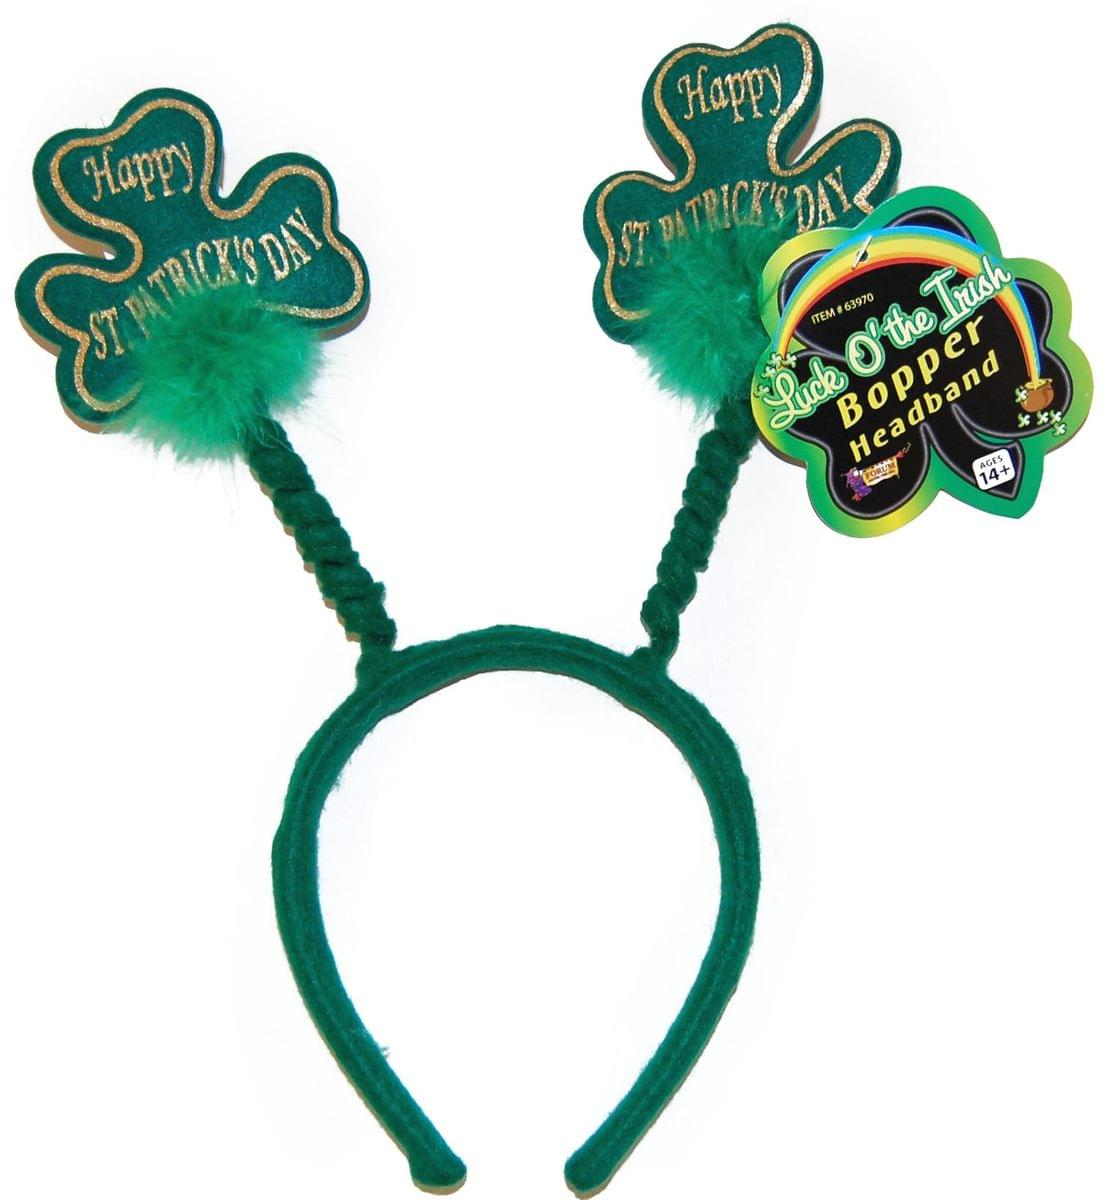 Happy St Patricks Days Costume Headband